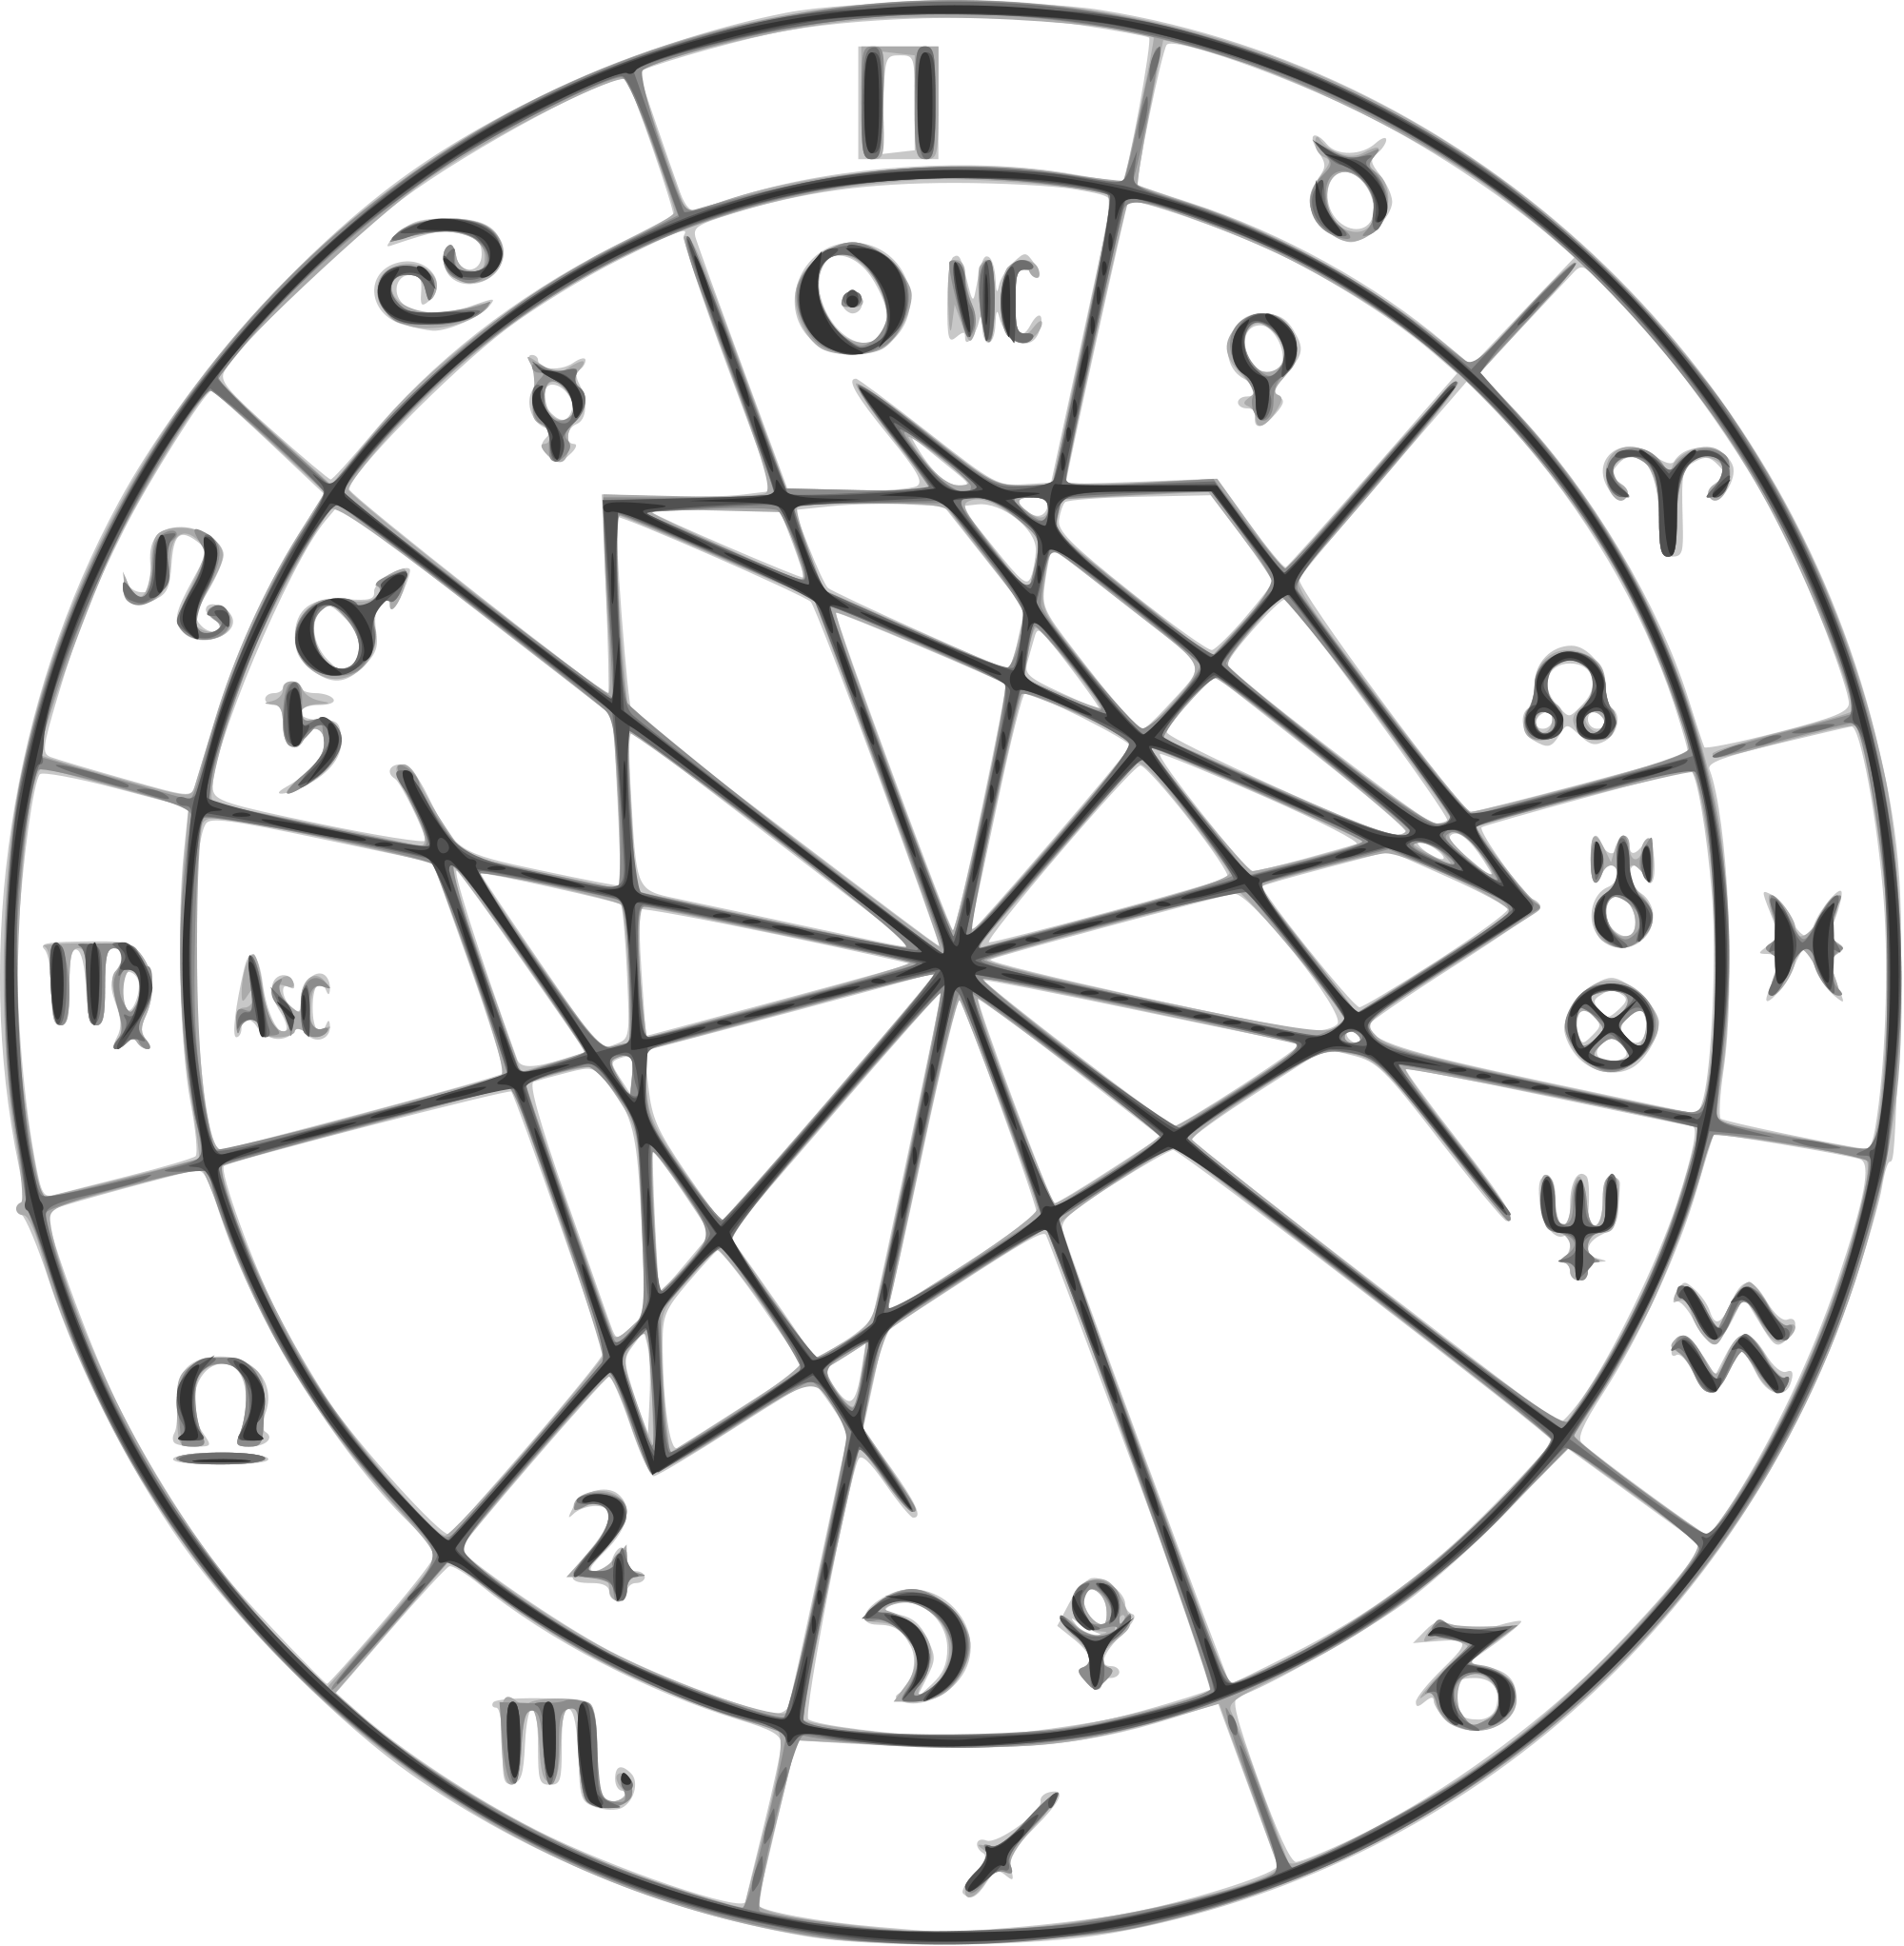 Horoscope svg #4, Download drawings